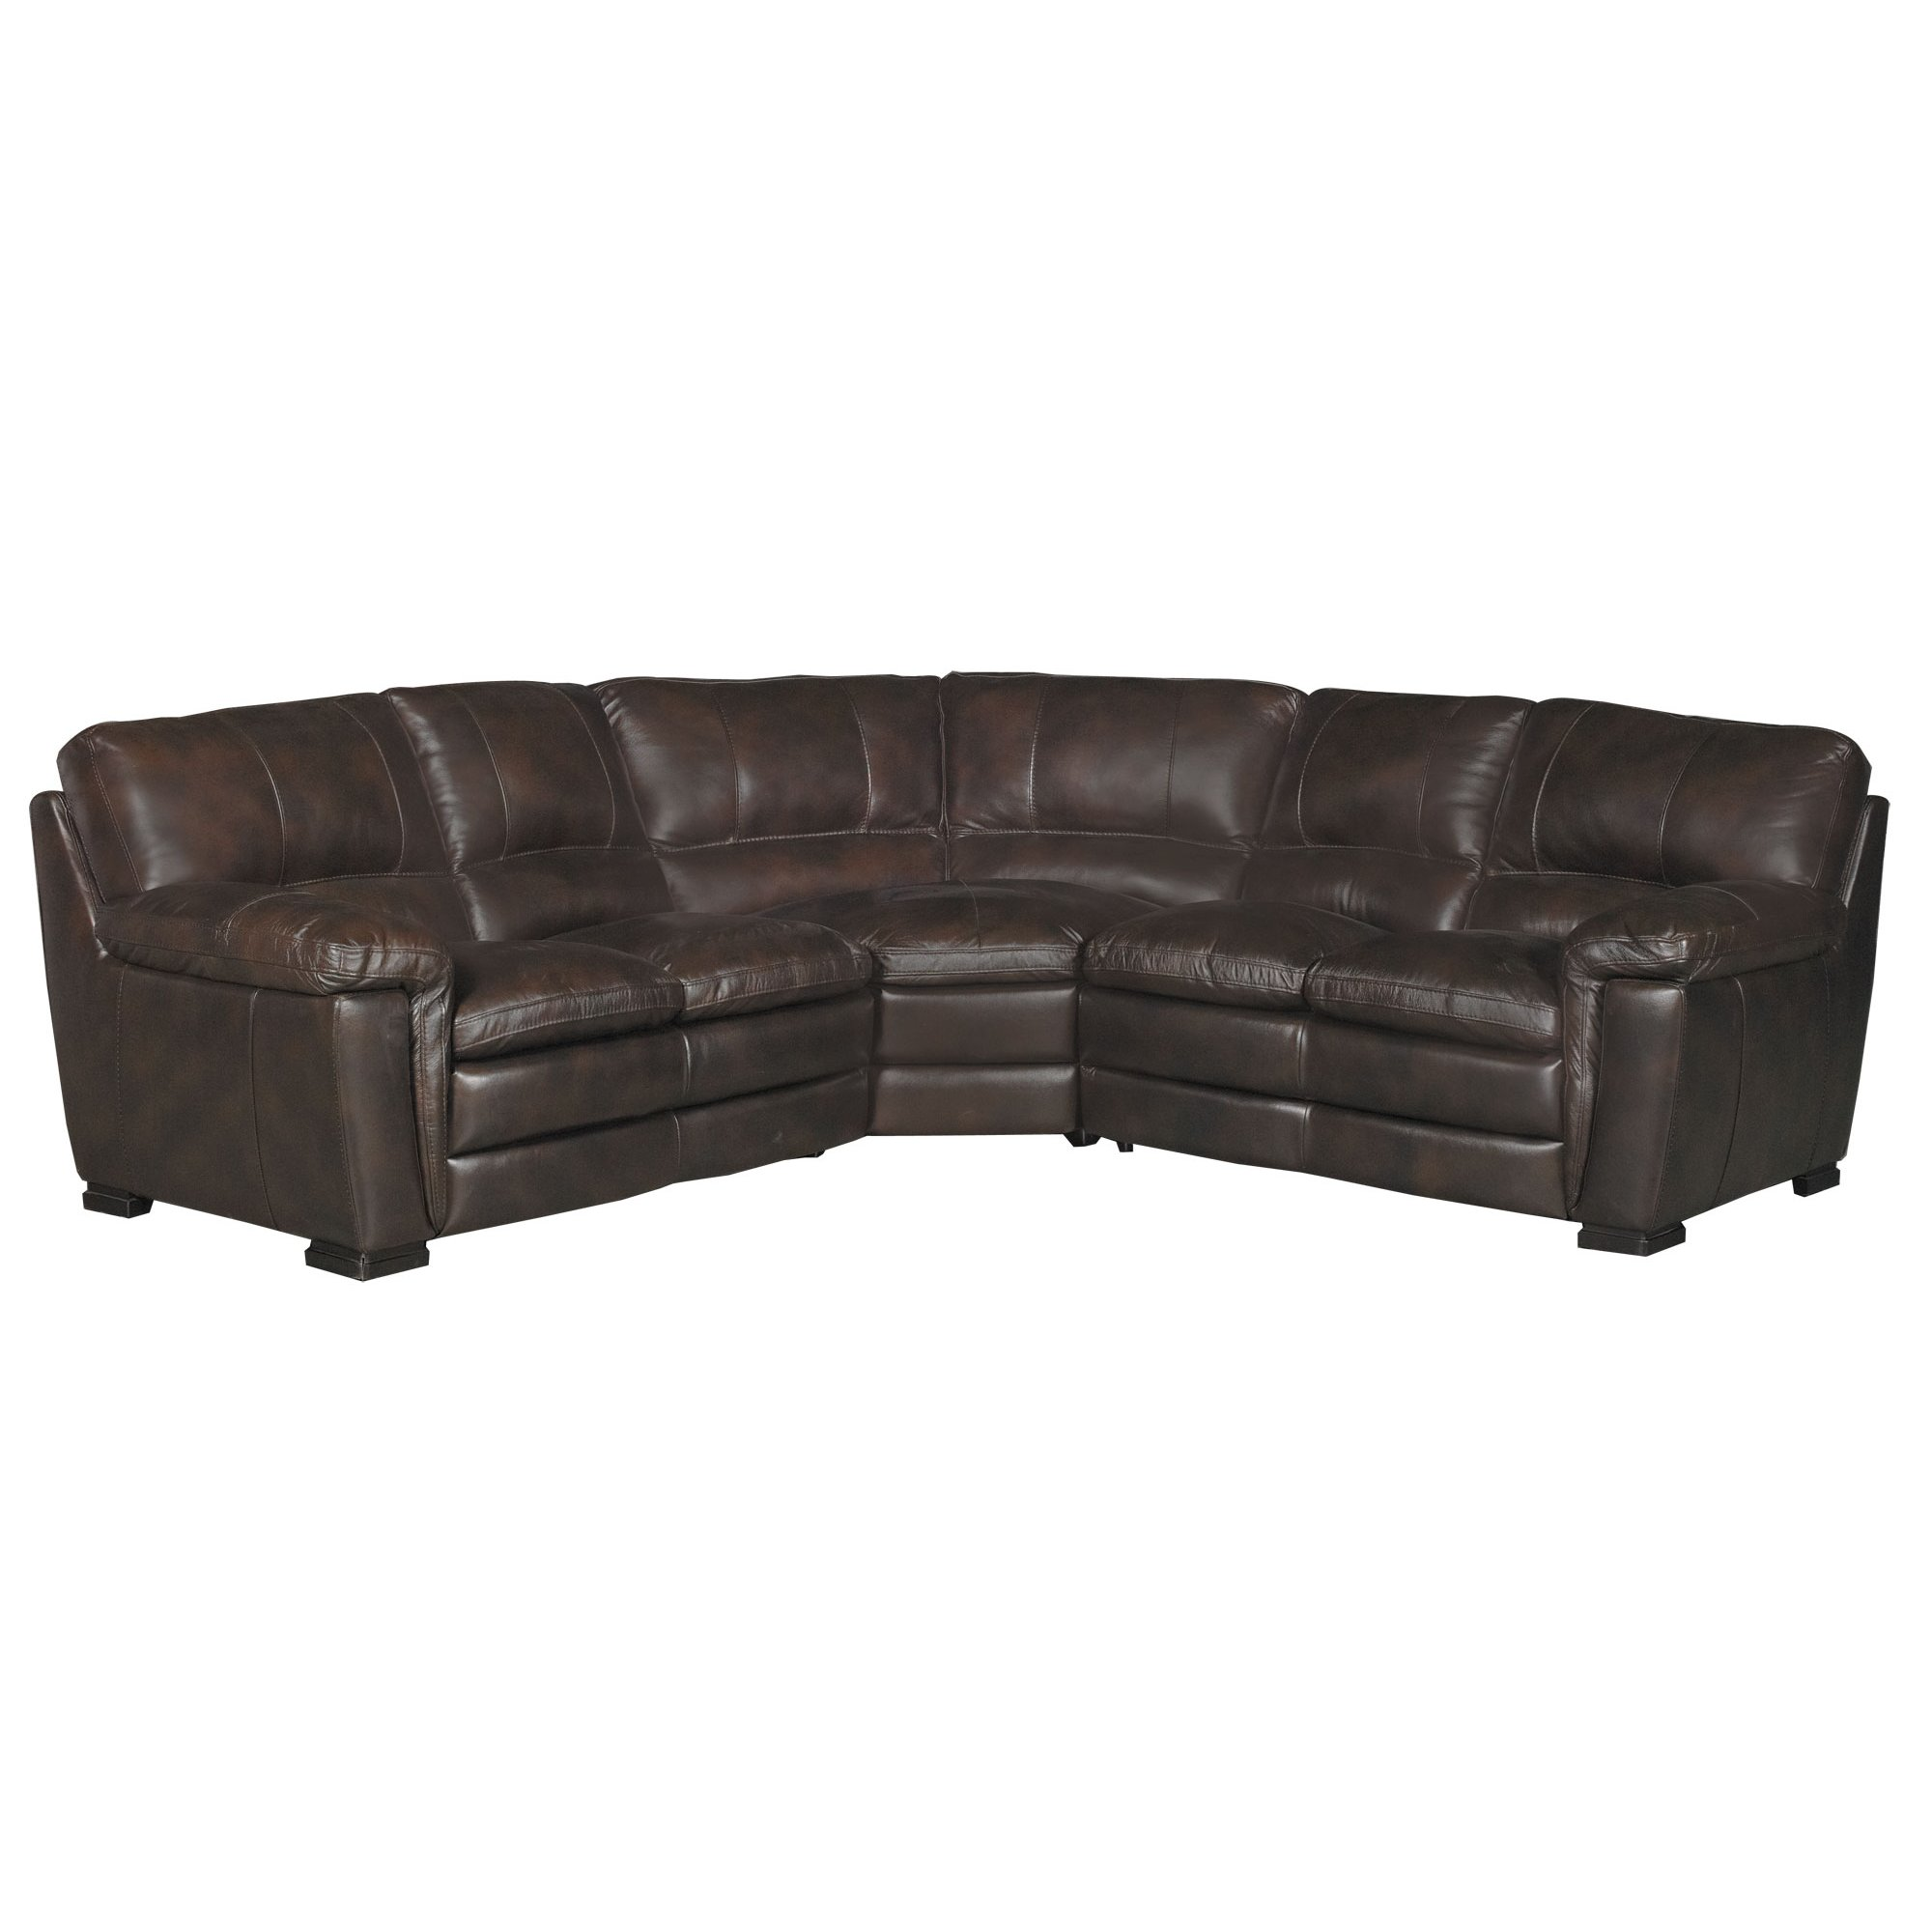 Contemporary 3 Piece Brown Leather Sectional Sofa - Tanner | RC Willey  Furniture Store